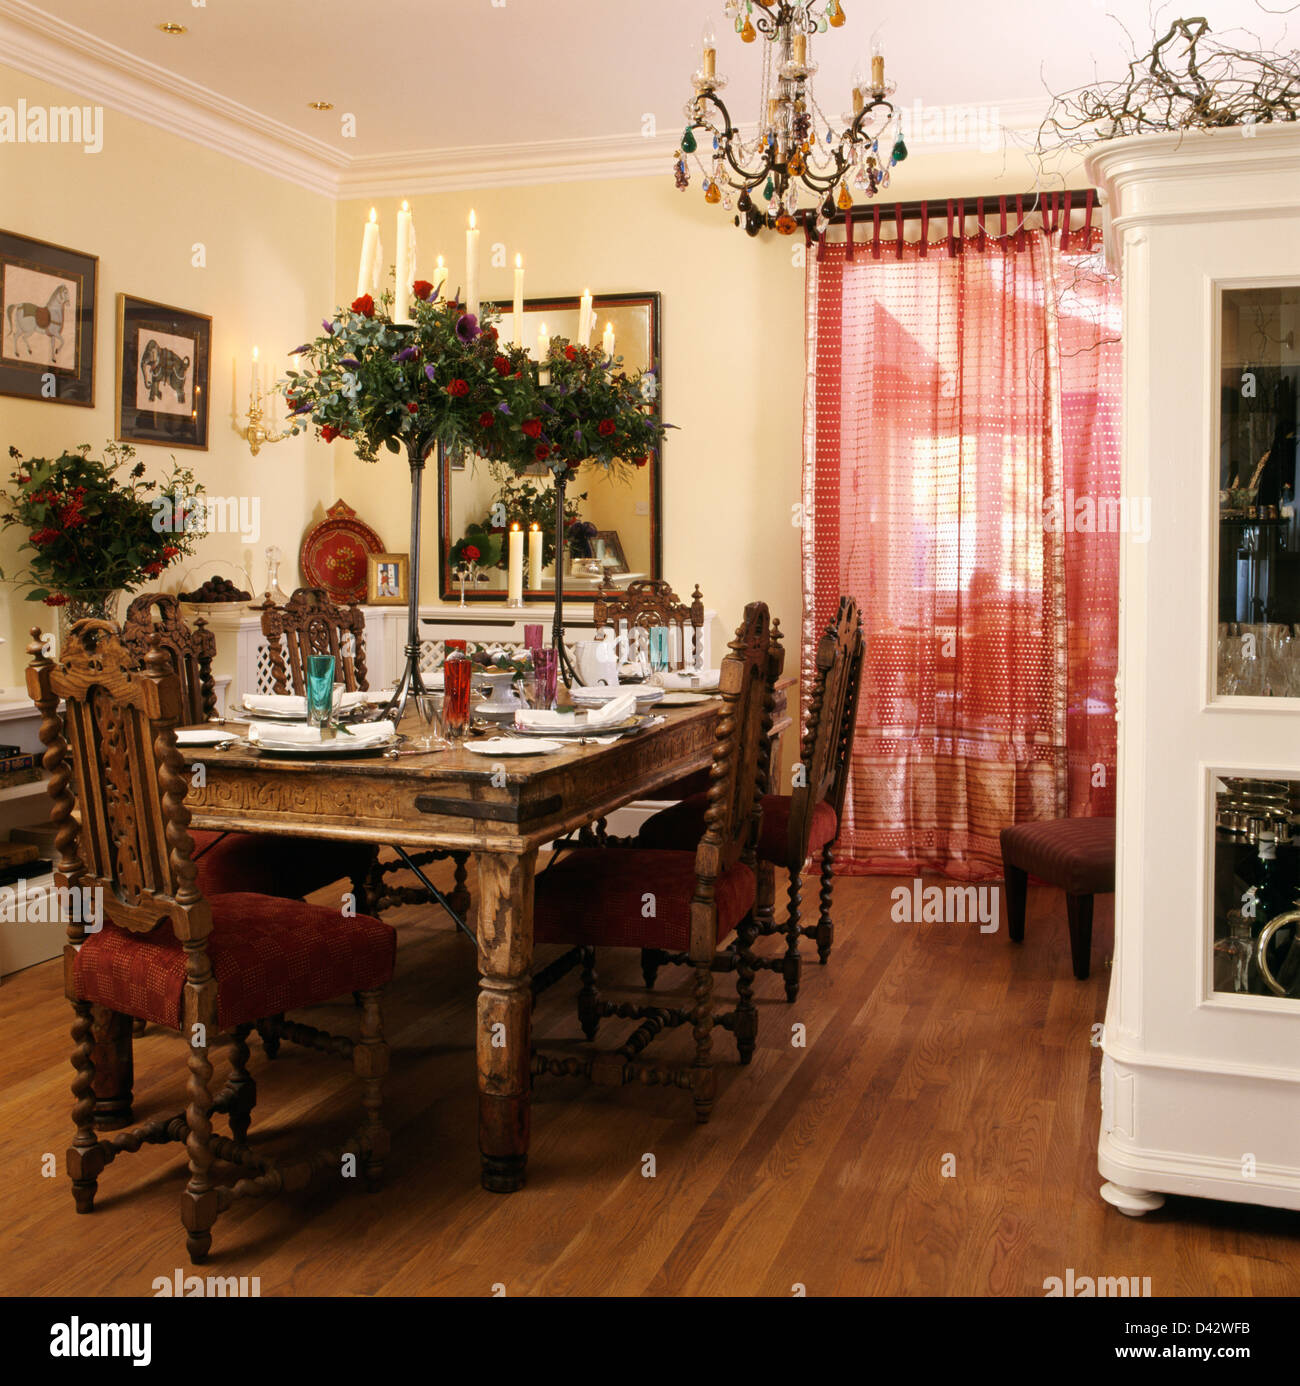 Jacobean-style chairs at renovated table with tall foliage displays in dining room with red Sari fabric door-curtain Stock Photo